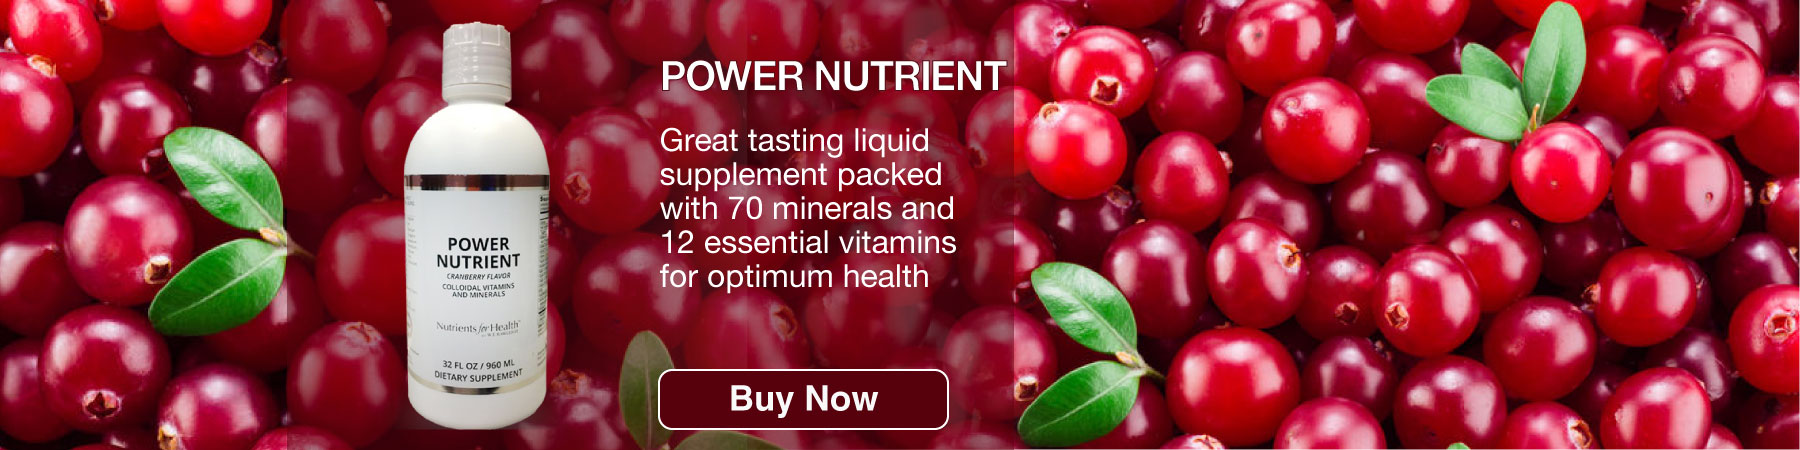 power nutrient